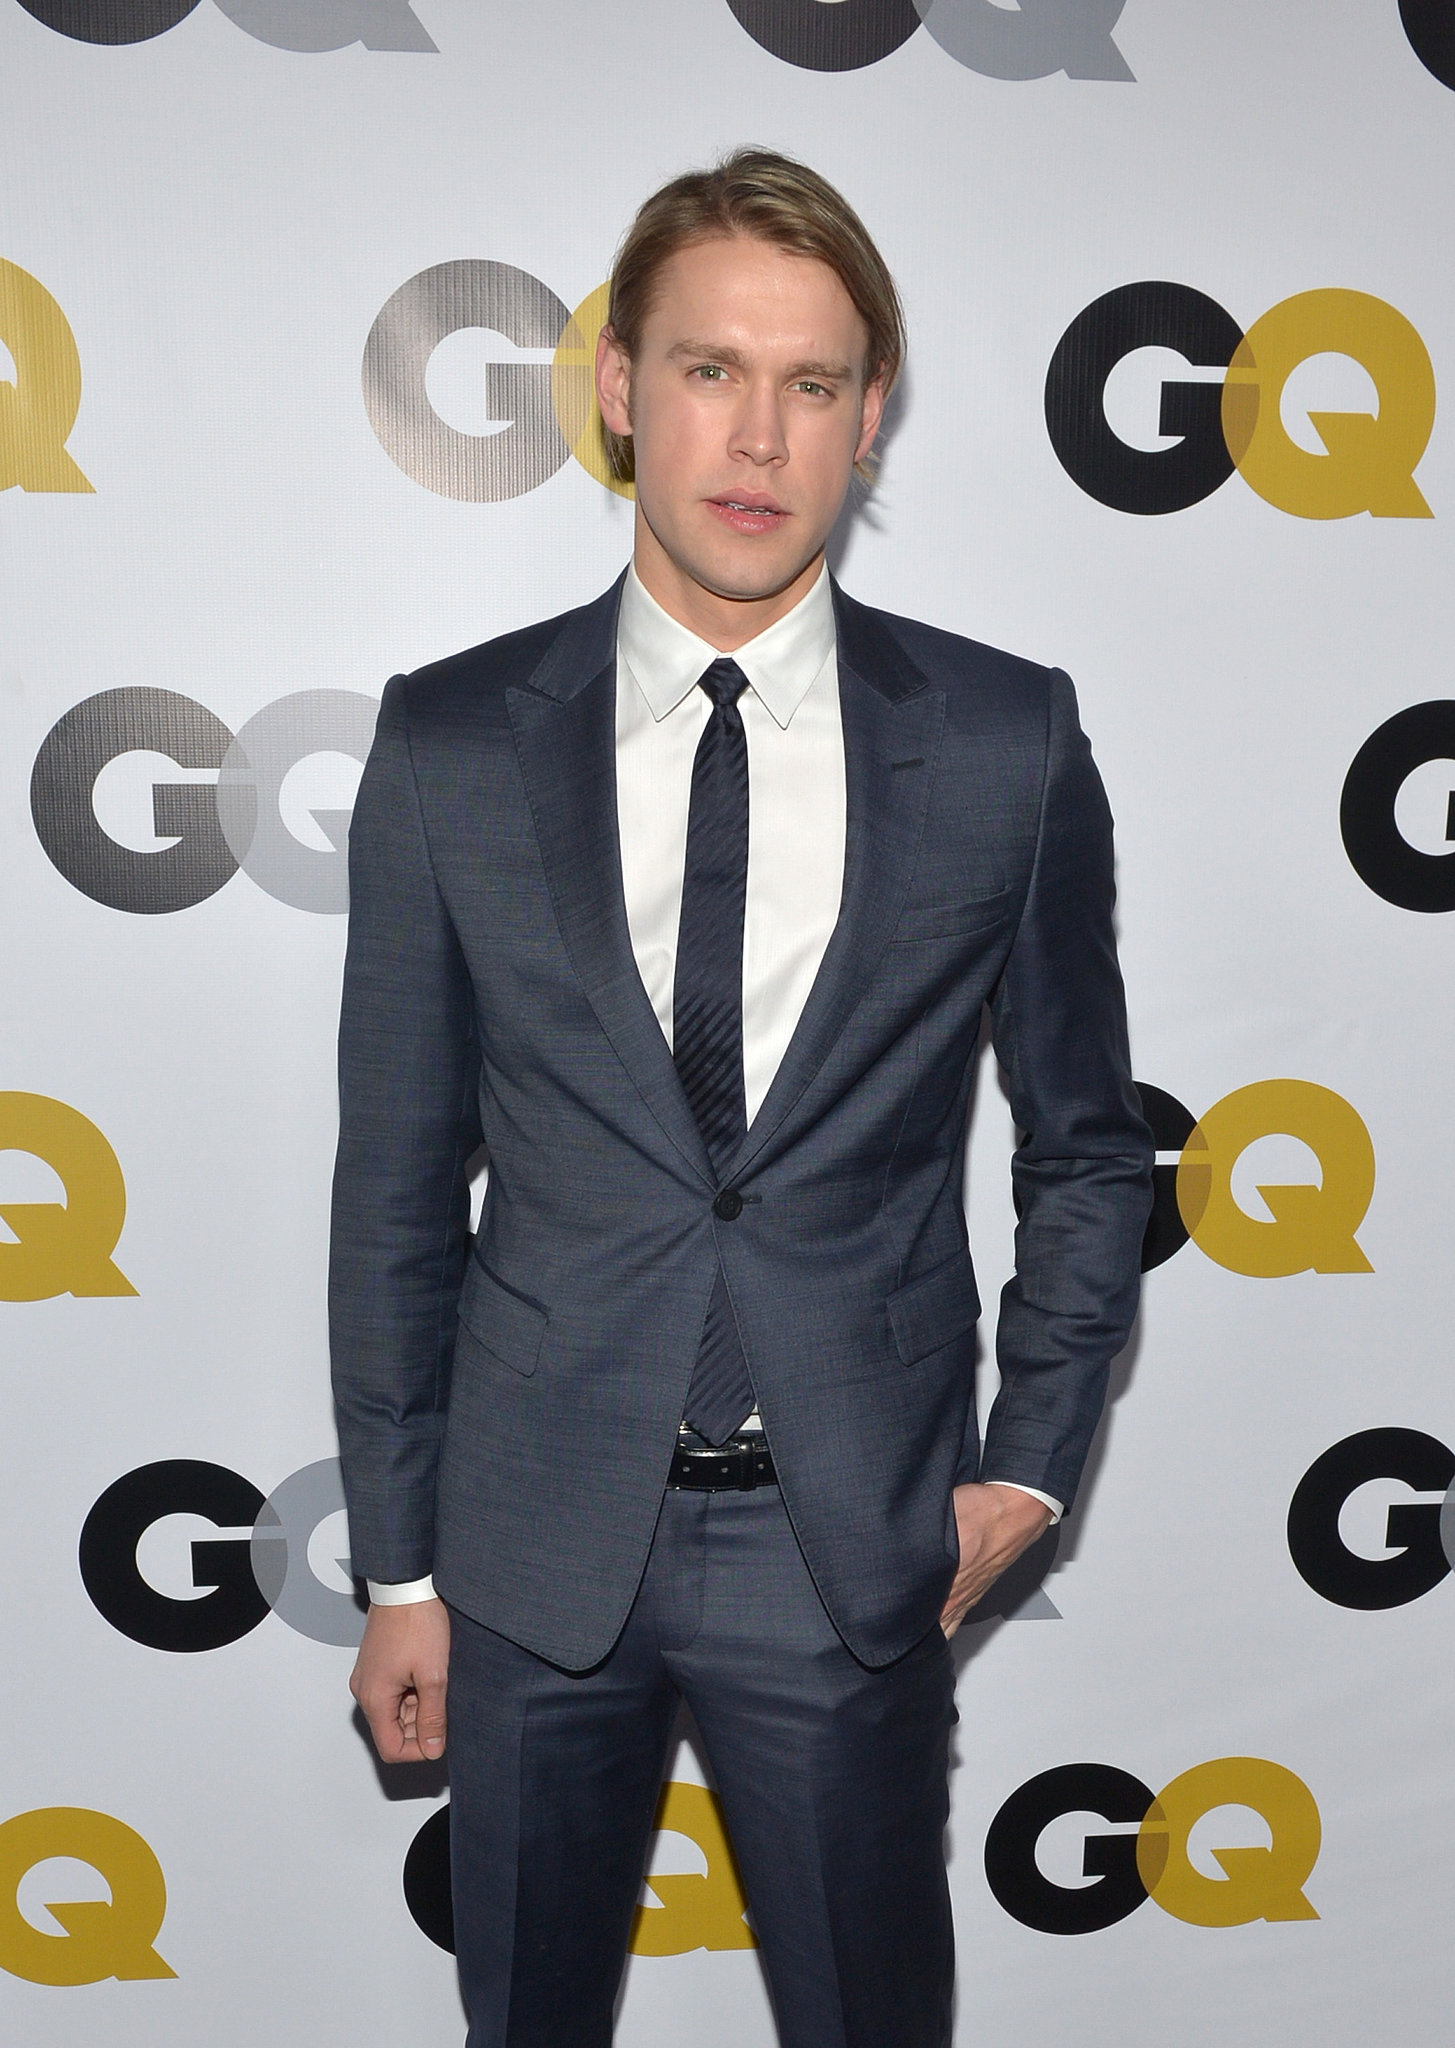 Chord Overstreet suited up for the GQ Men of the Year party.